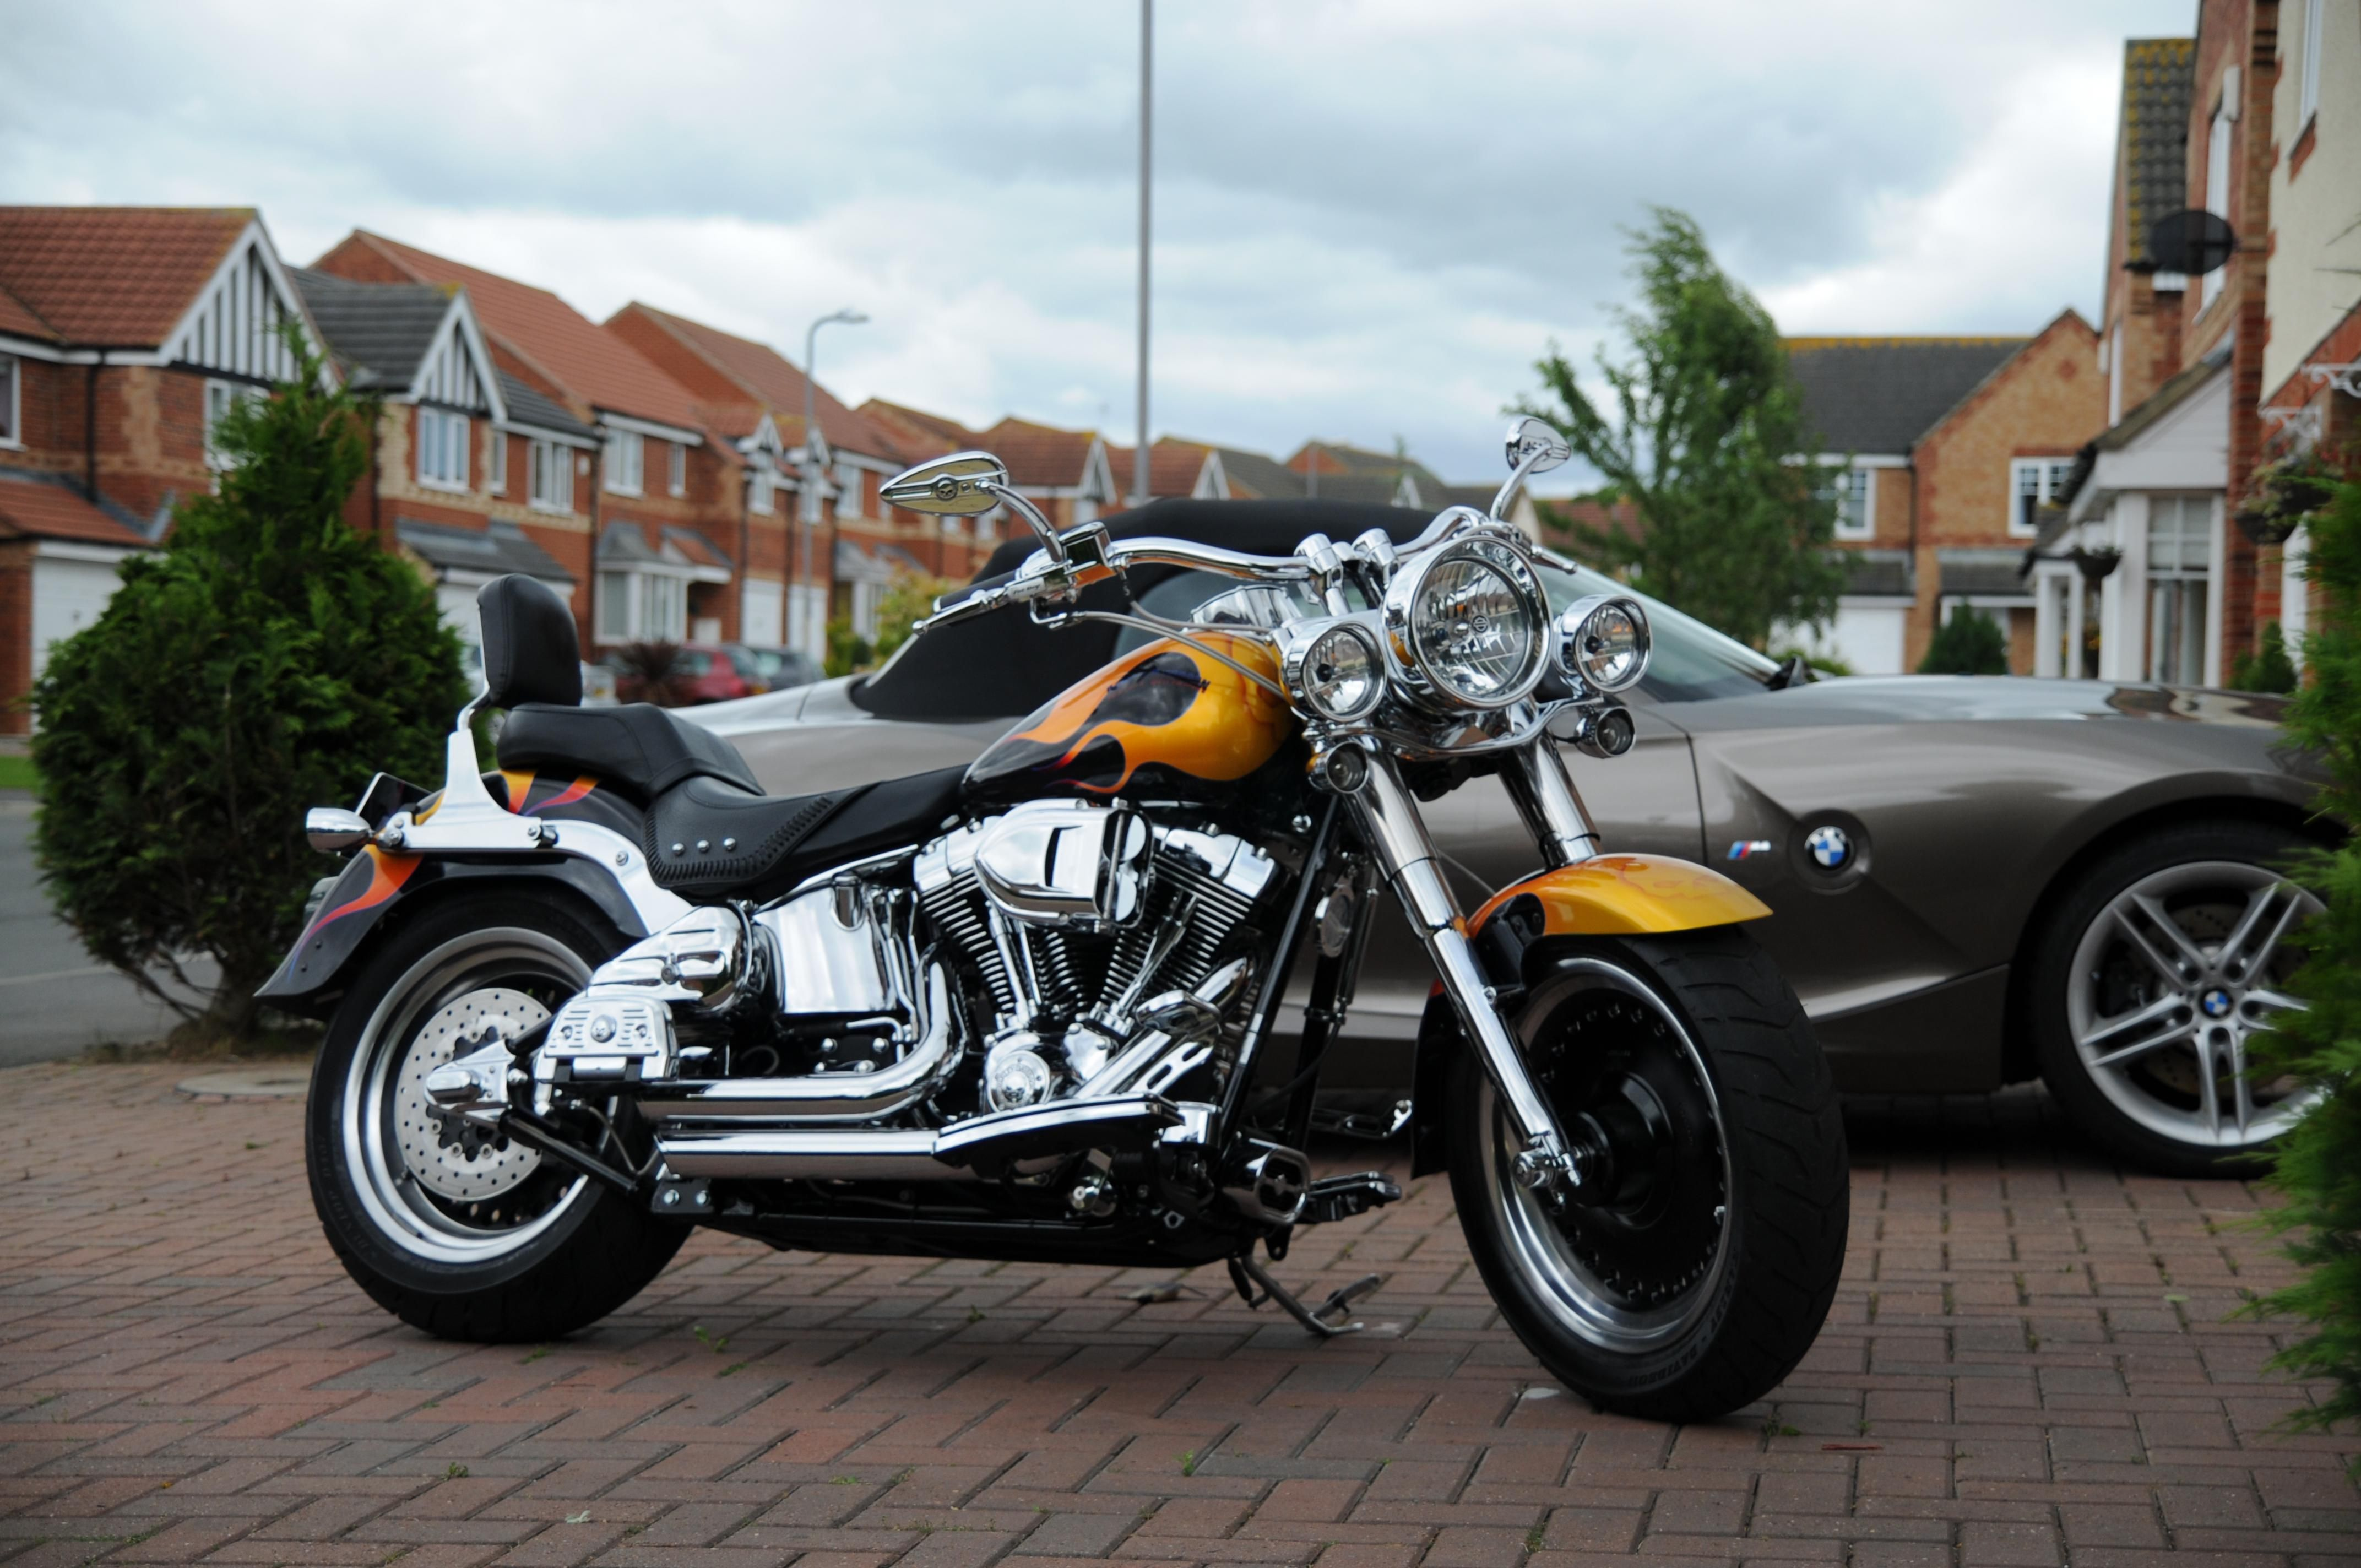 Coolest Bike In The World Owners Drive When They Are Not